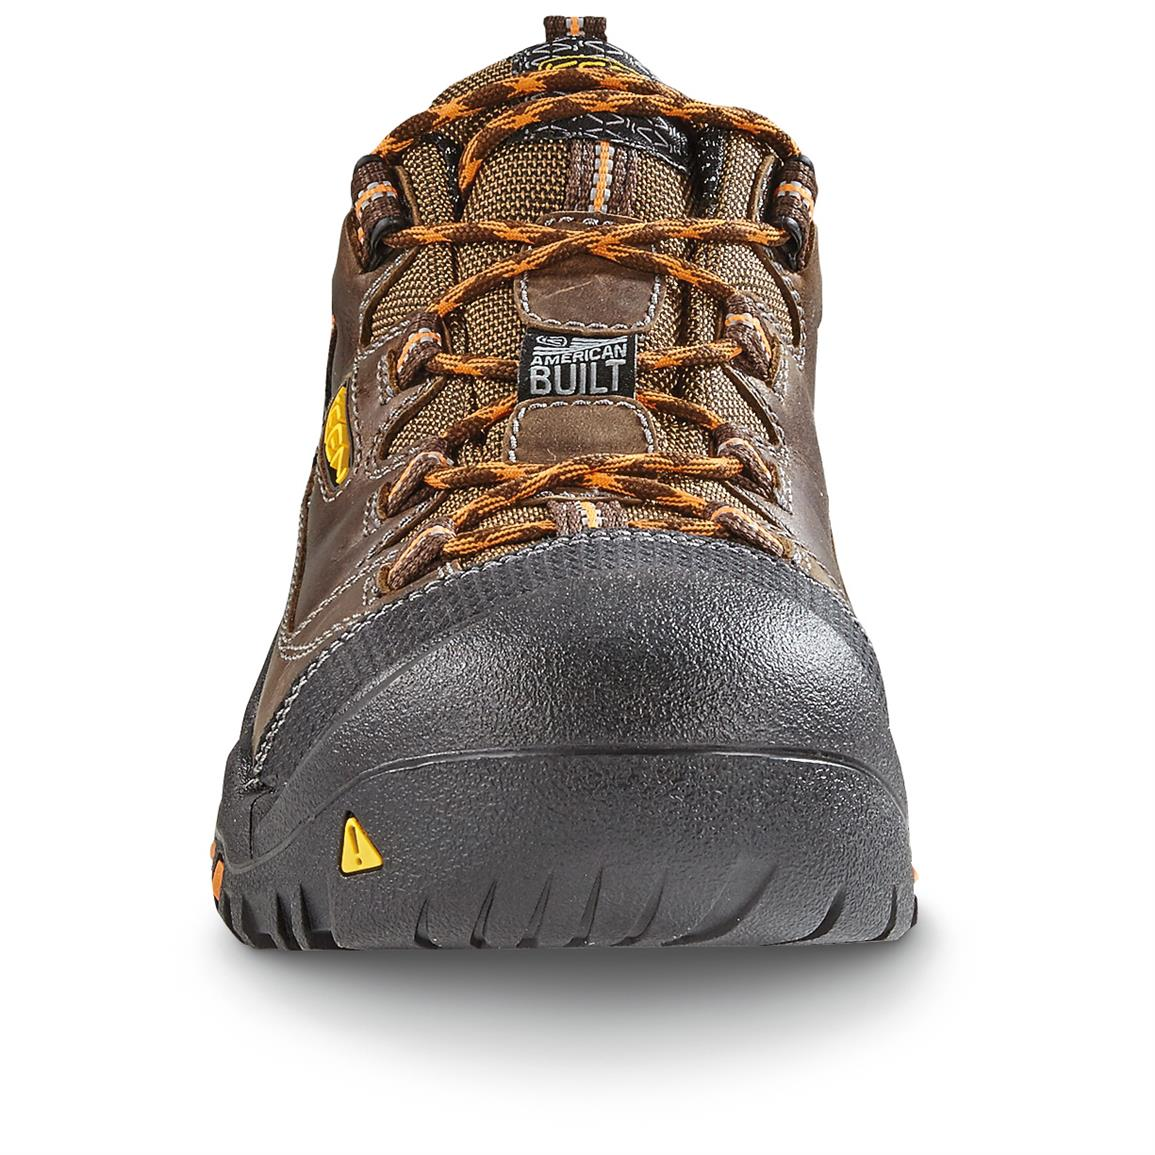 KEEN.dry waterproof, breathable membrane for sure-dry, no-sweat comfort